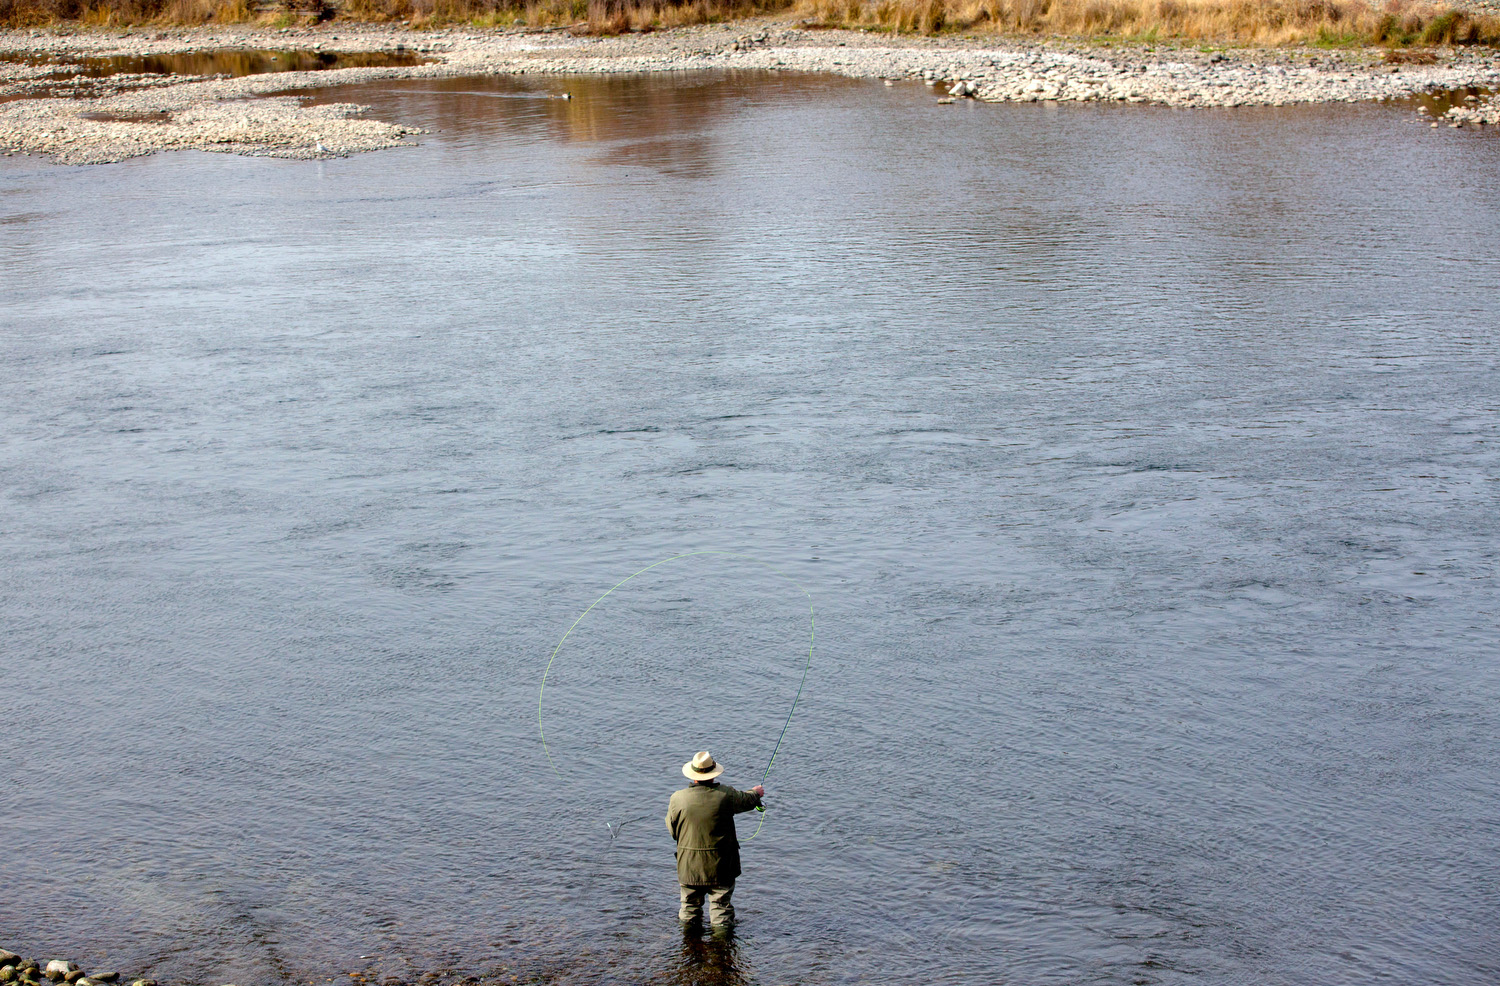 Fly fishing on the American River.